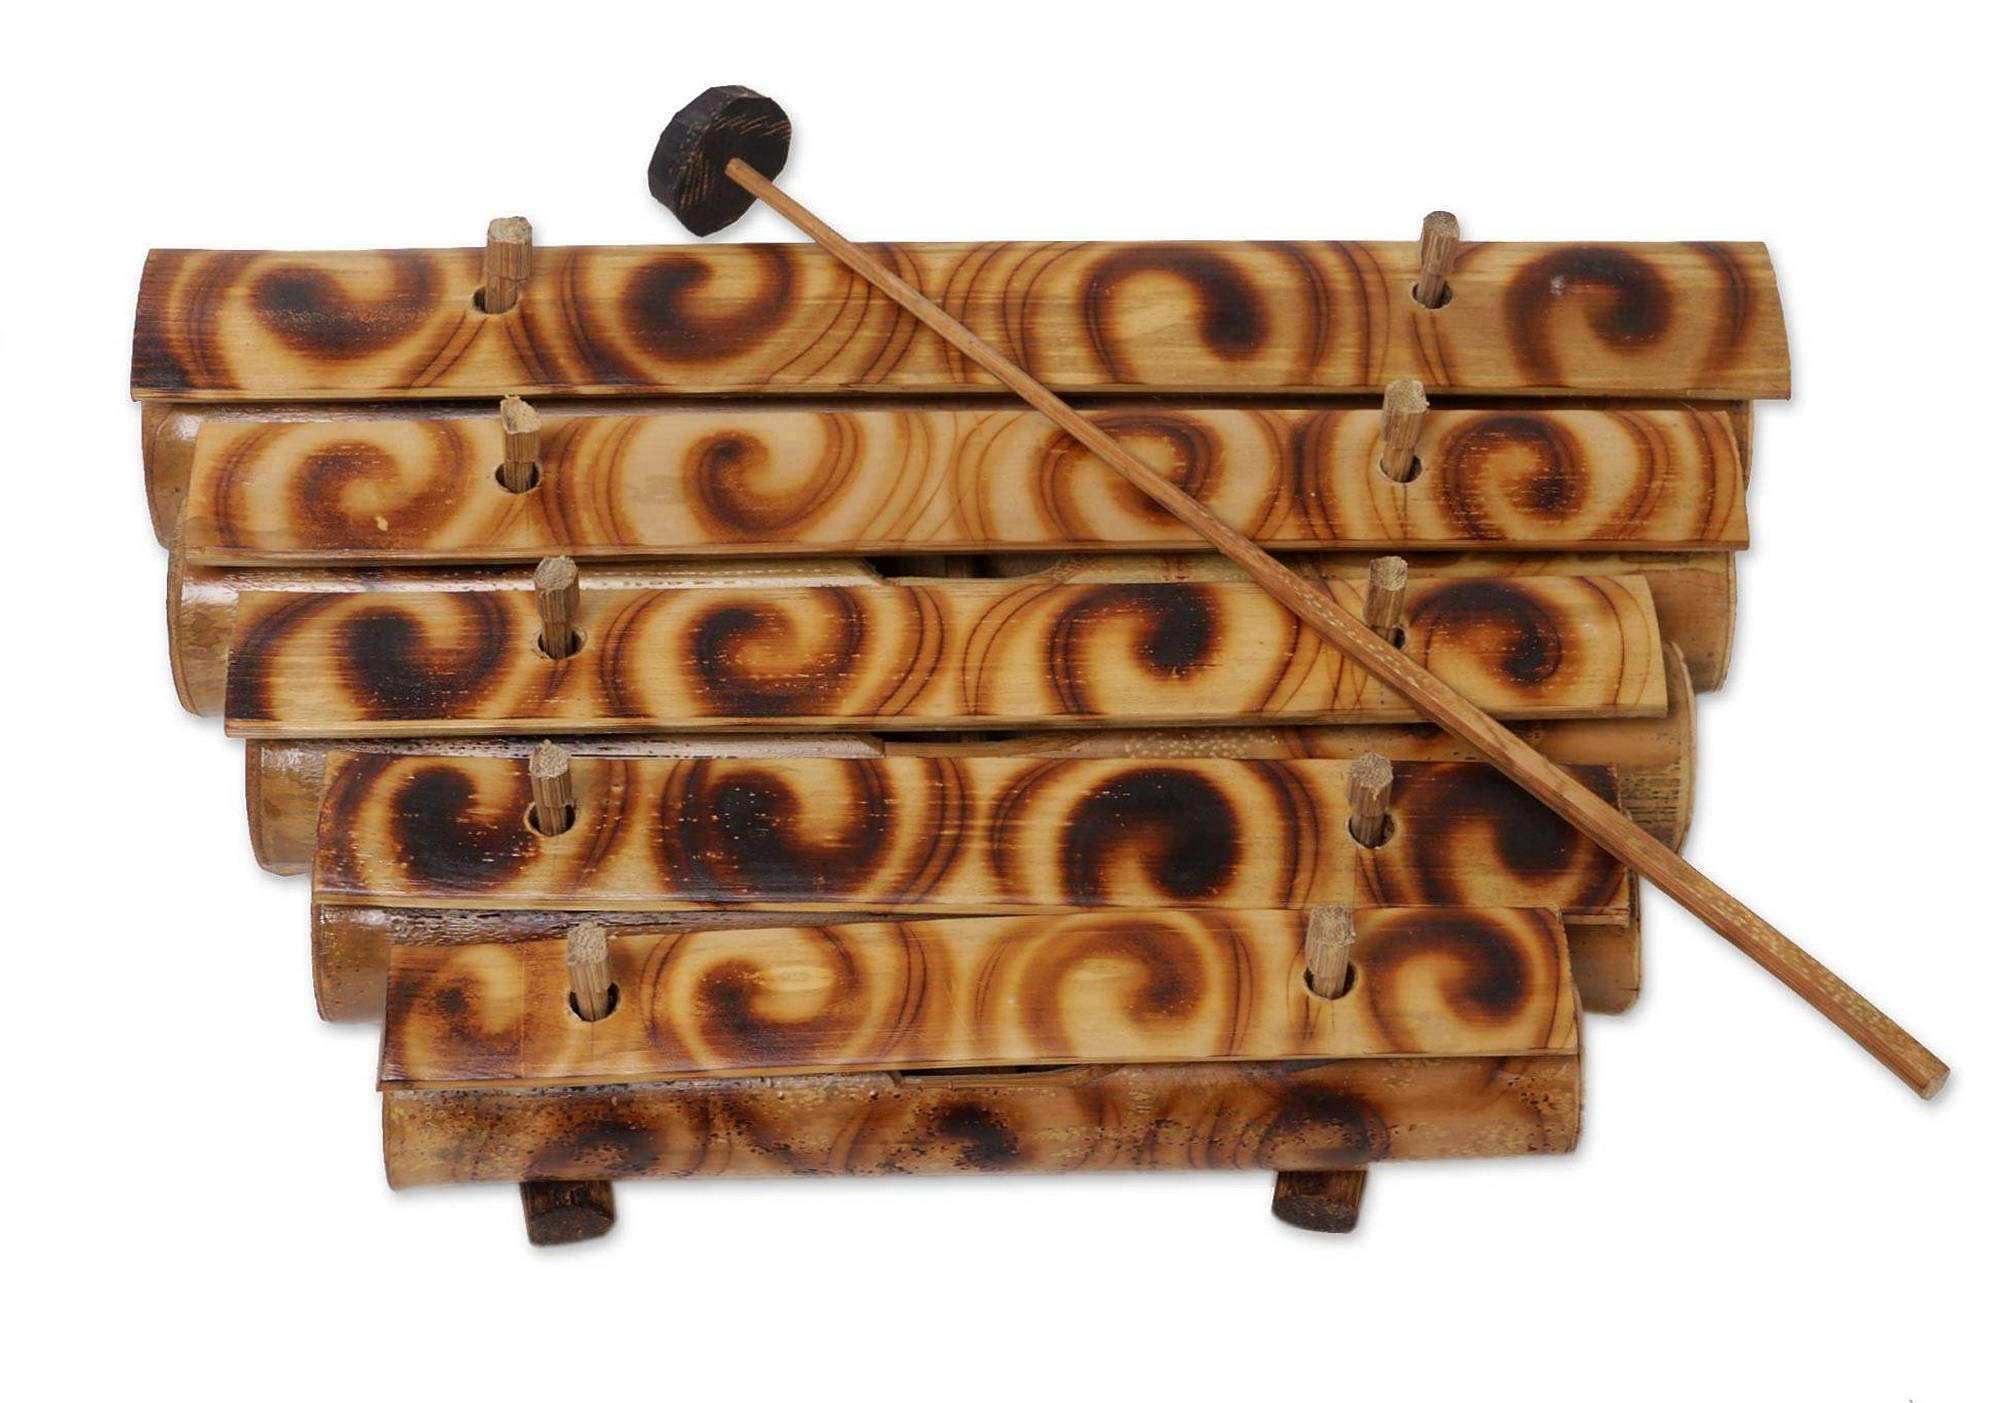 Wood Xylophone With Mallet 5 Tone Bamboo Zen Energy Chime Percussion Instrument - Large Size by Jive